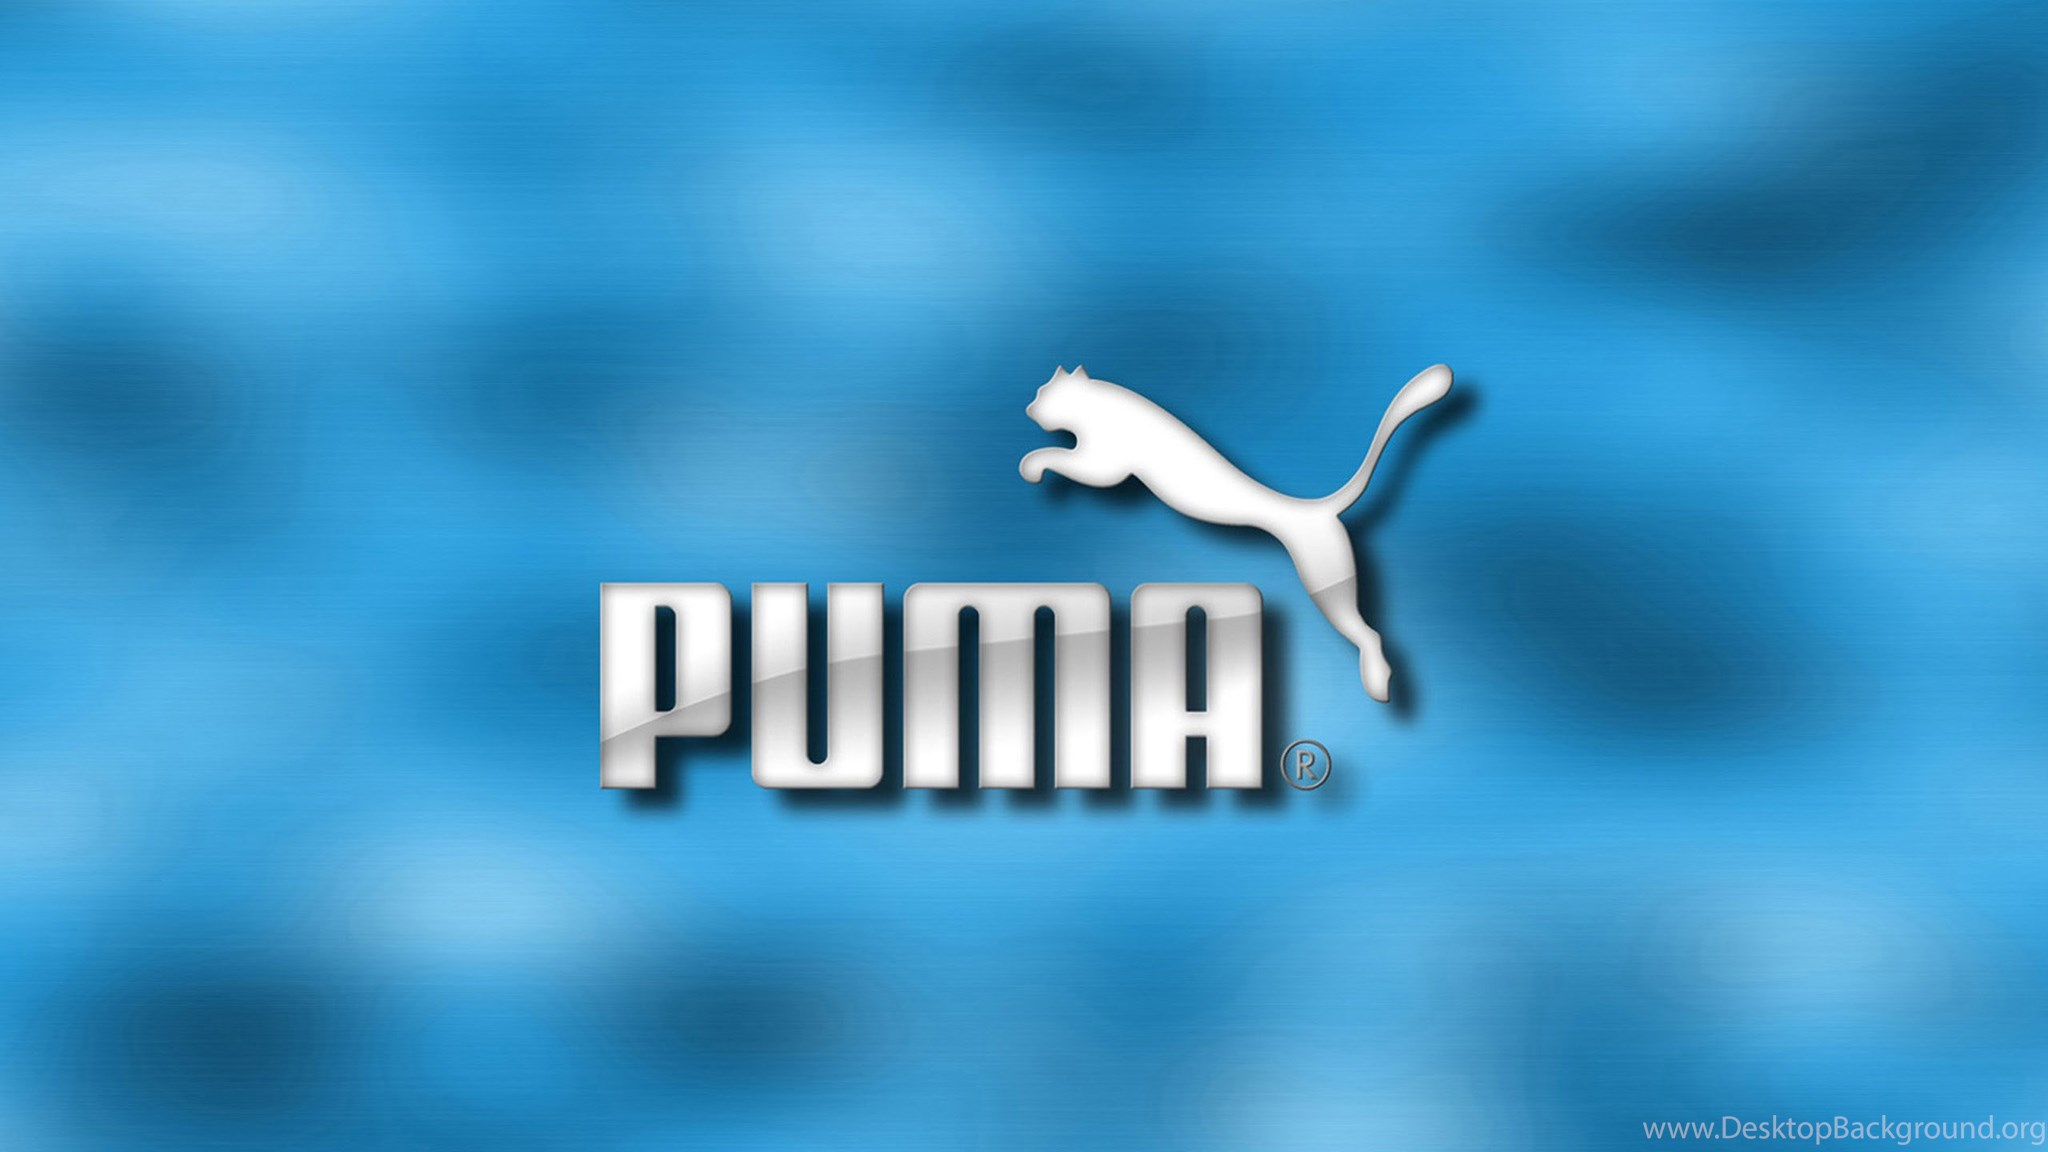 puma wallpaper logo - HD 2048×1152